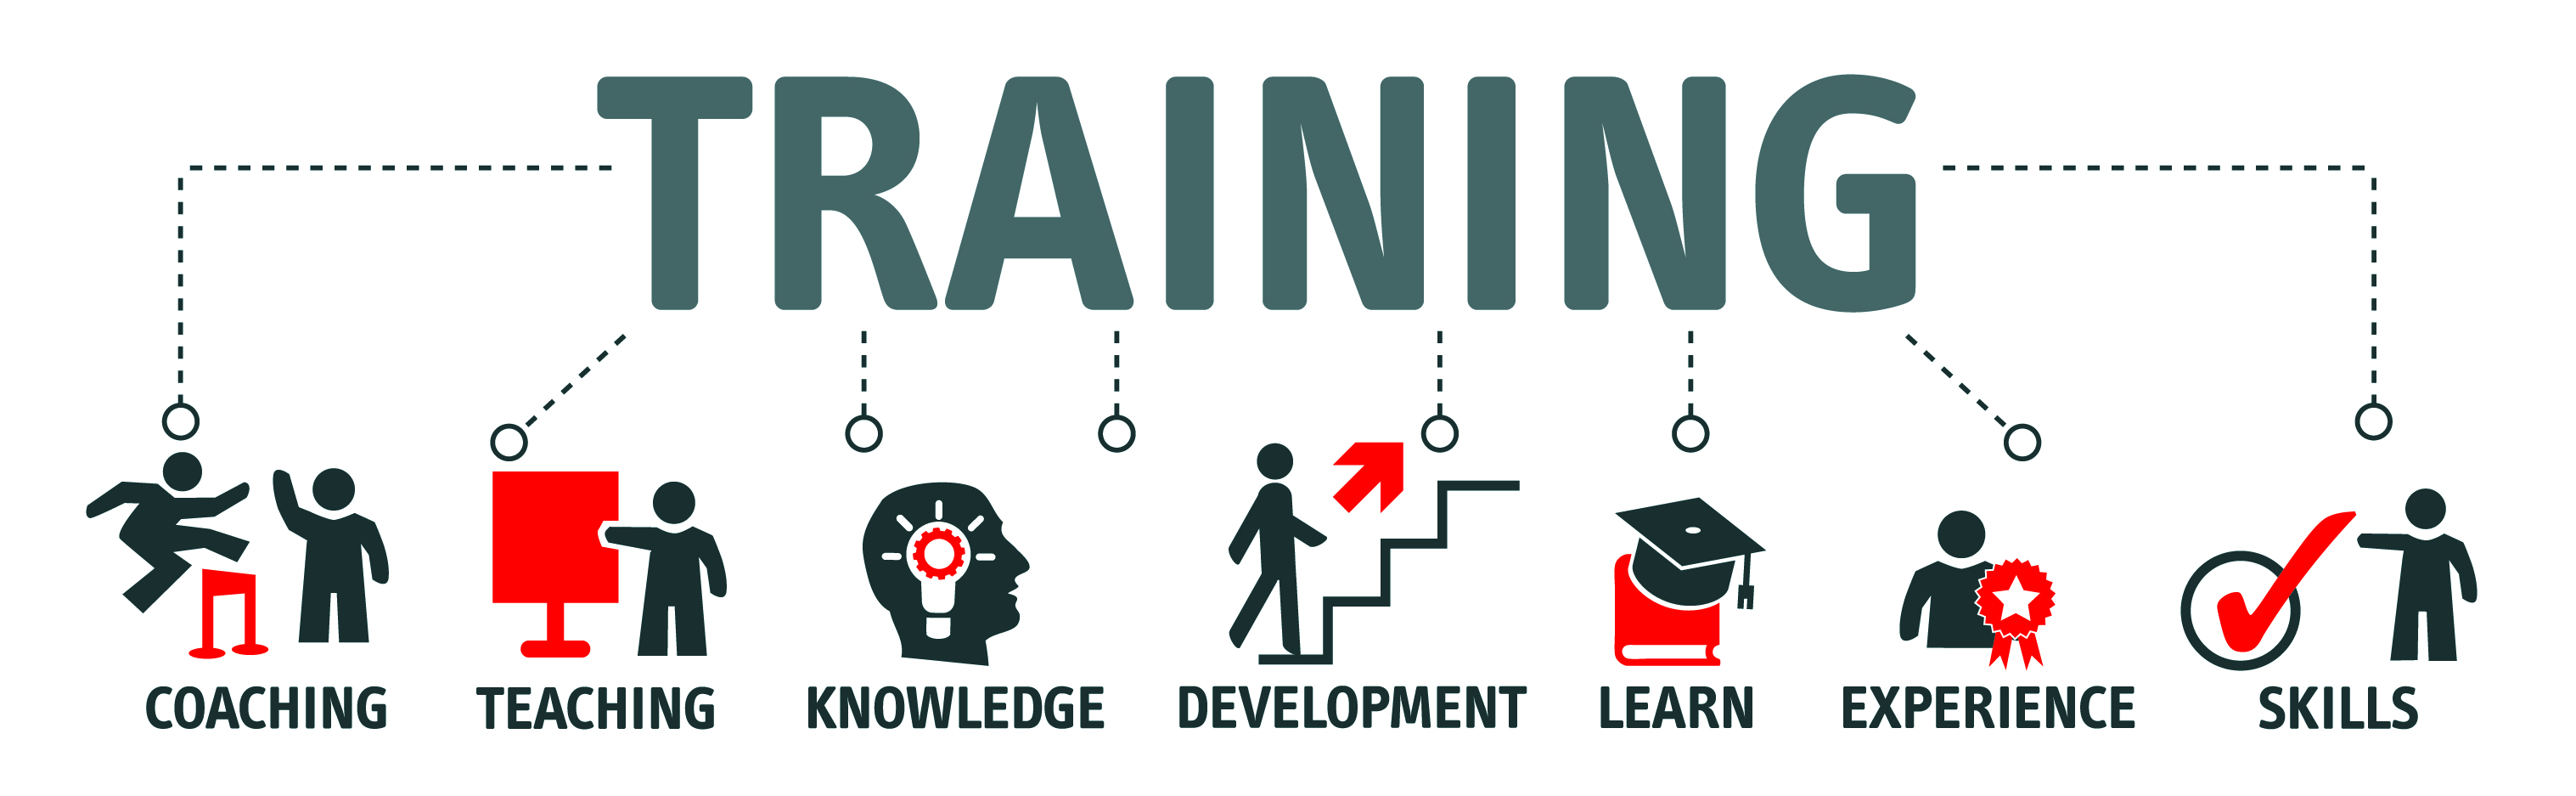 Training graph down to coaching teaching knowledge development learn experience skills